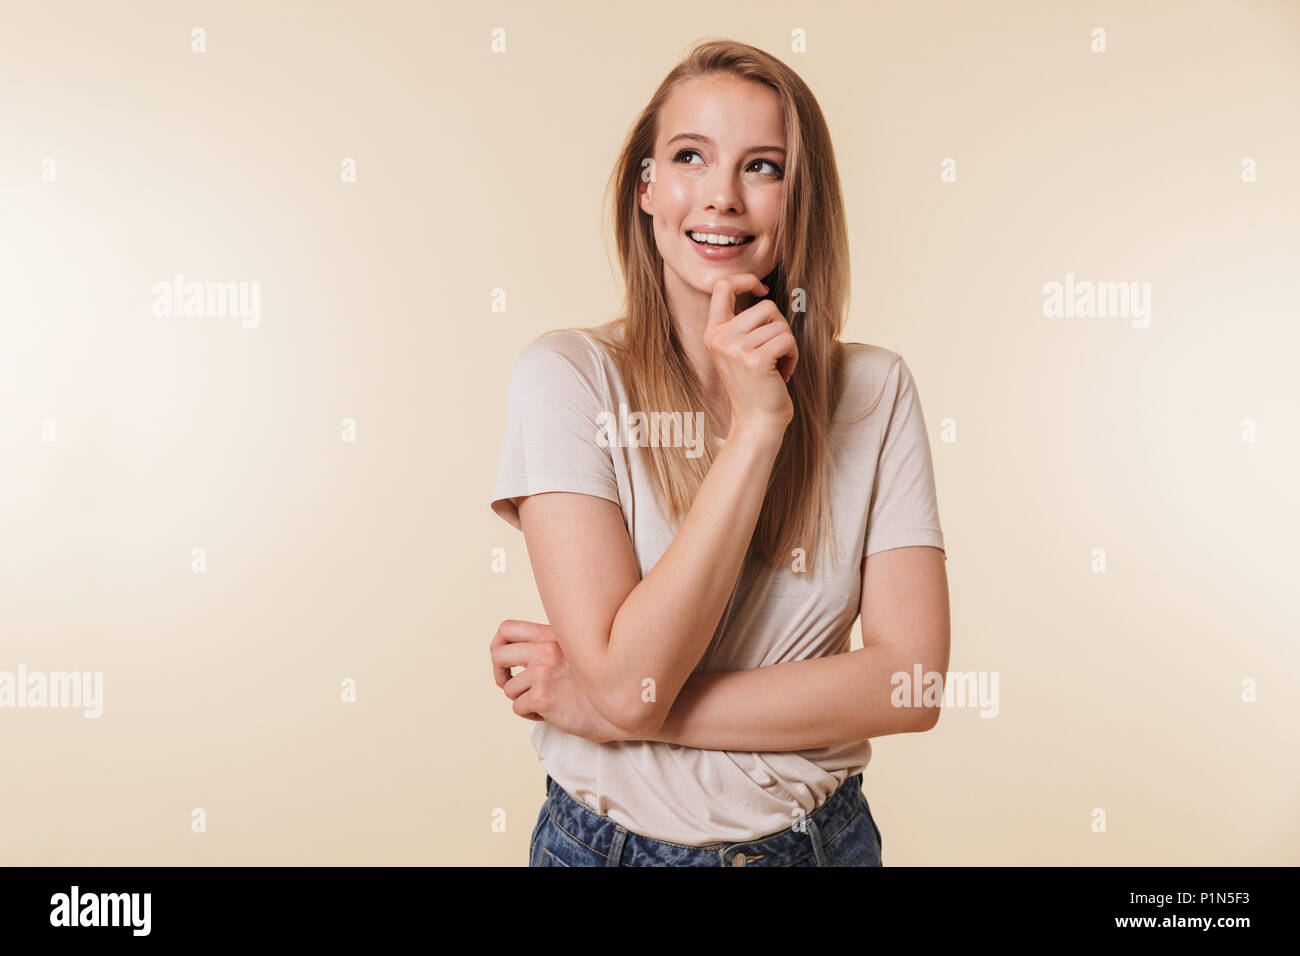 Image of affable blond woman 20s wearing casual t-shirt smiling and looking upward while standing with arms crossed isolated over beige background in  - Stock Image